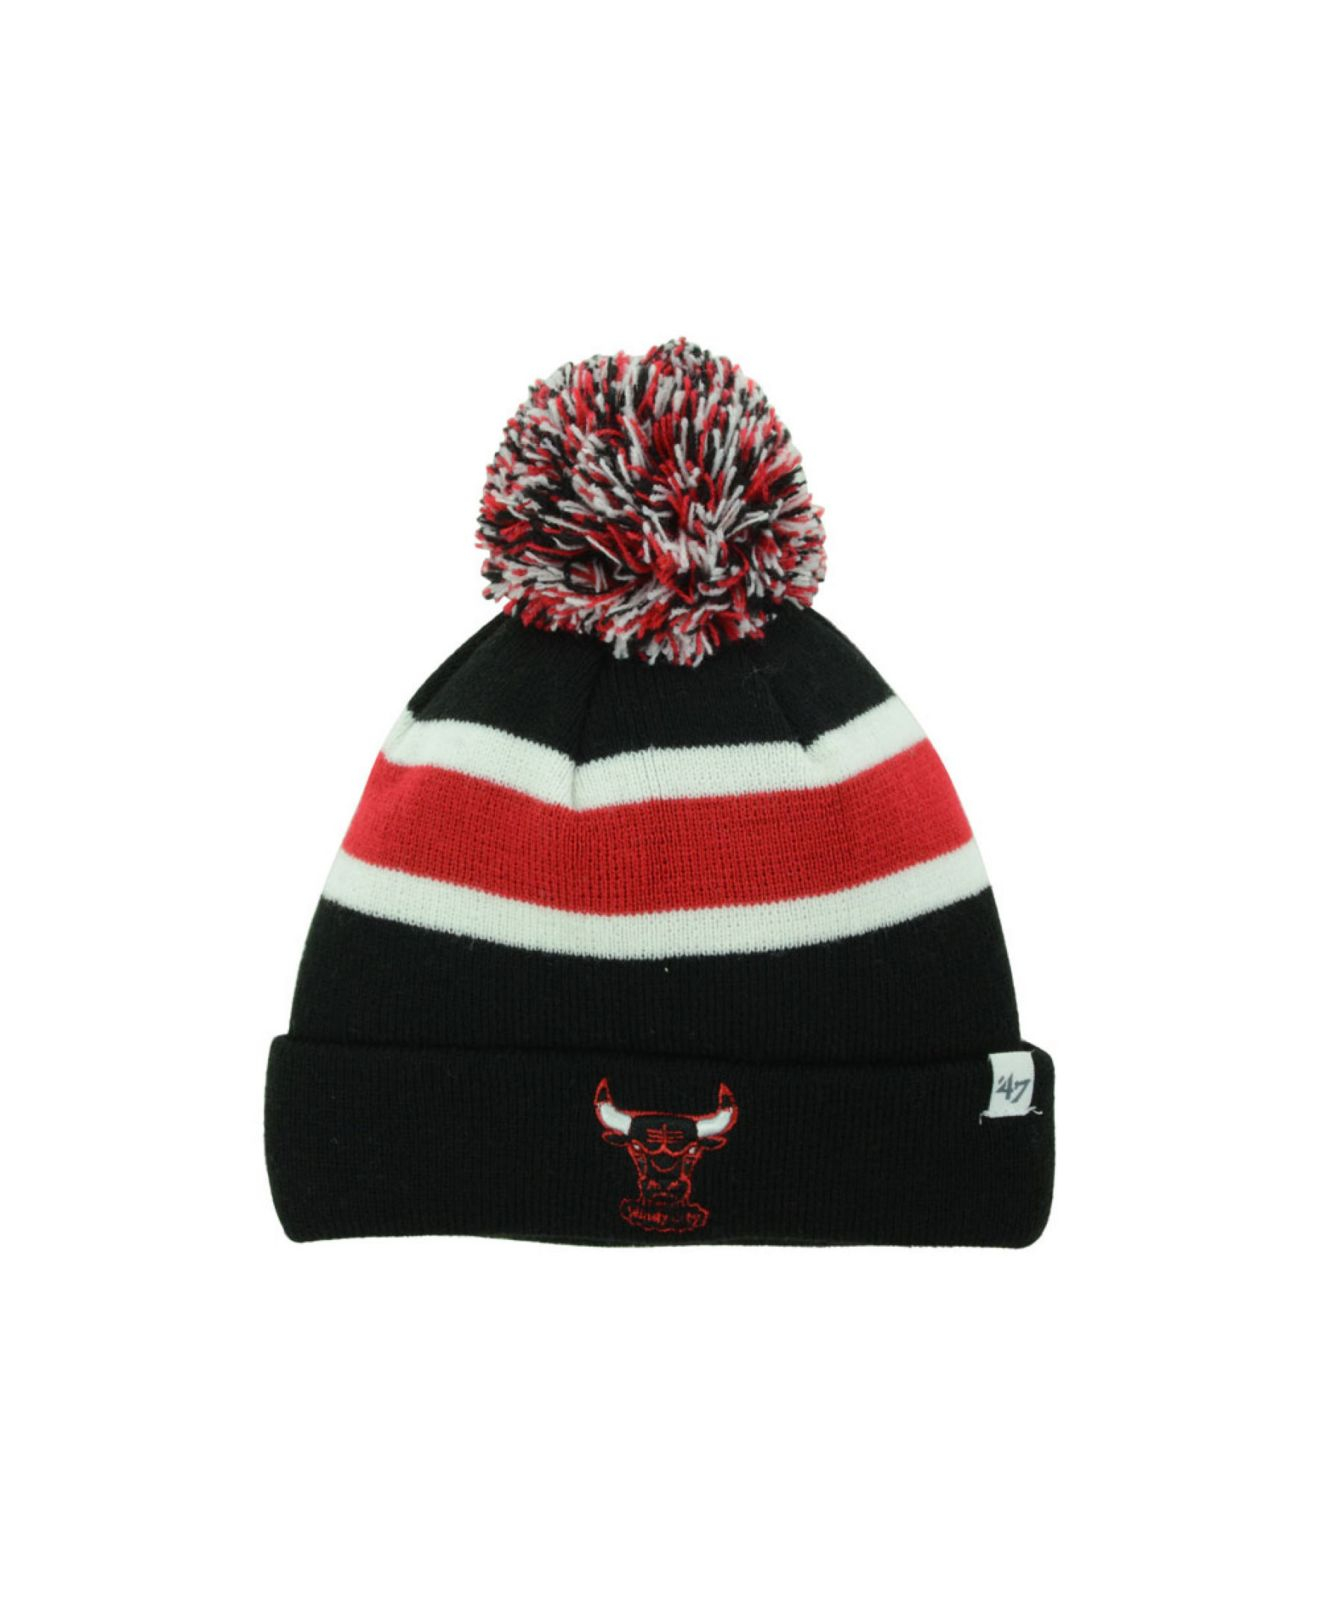 295377266e5c3 Lyst - 47 Brand Kids  Chicago Bulls Hwc Breakaway Pom Knit Hat in Black